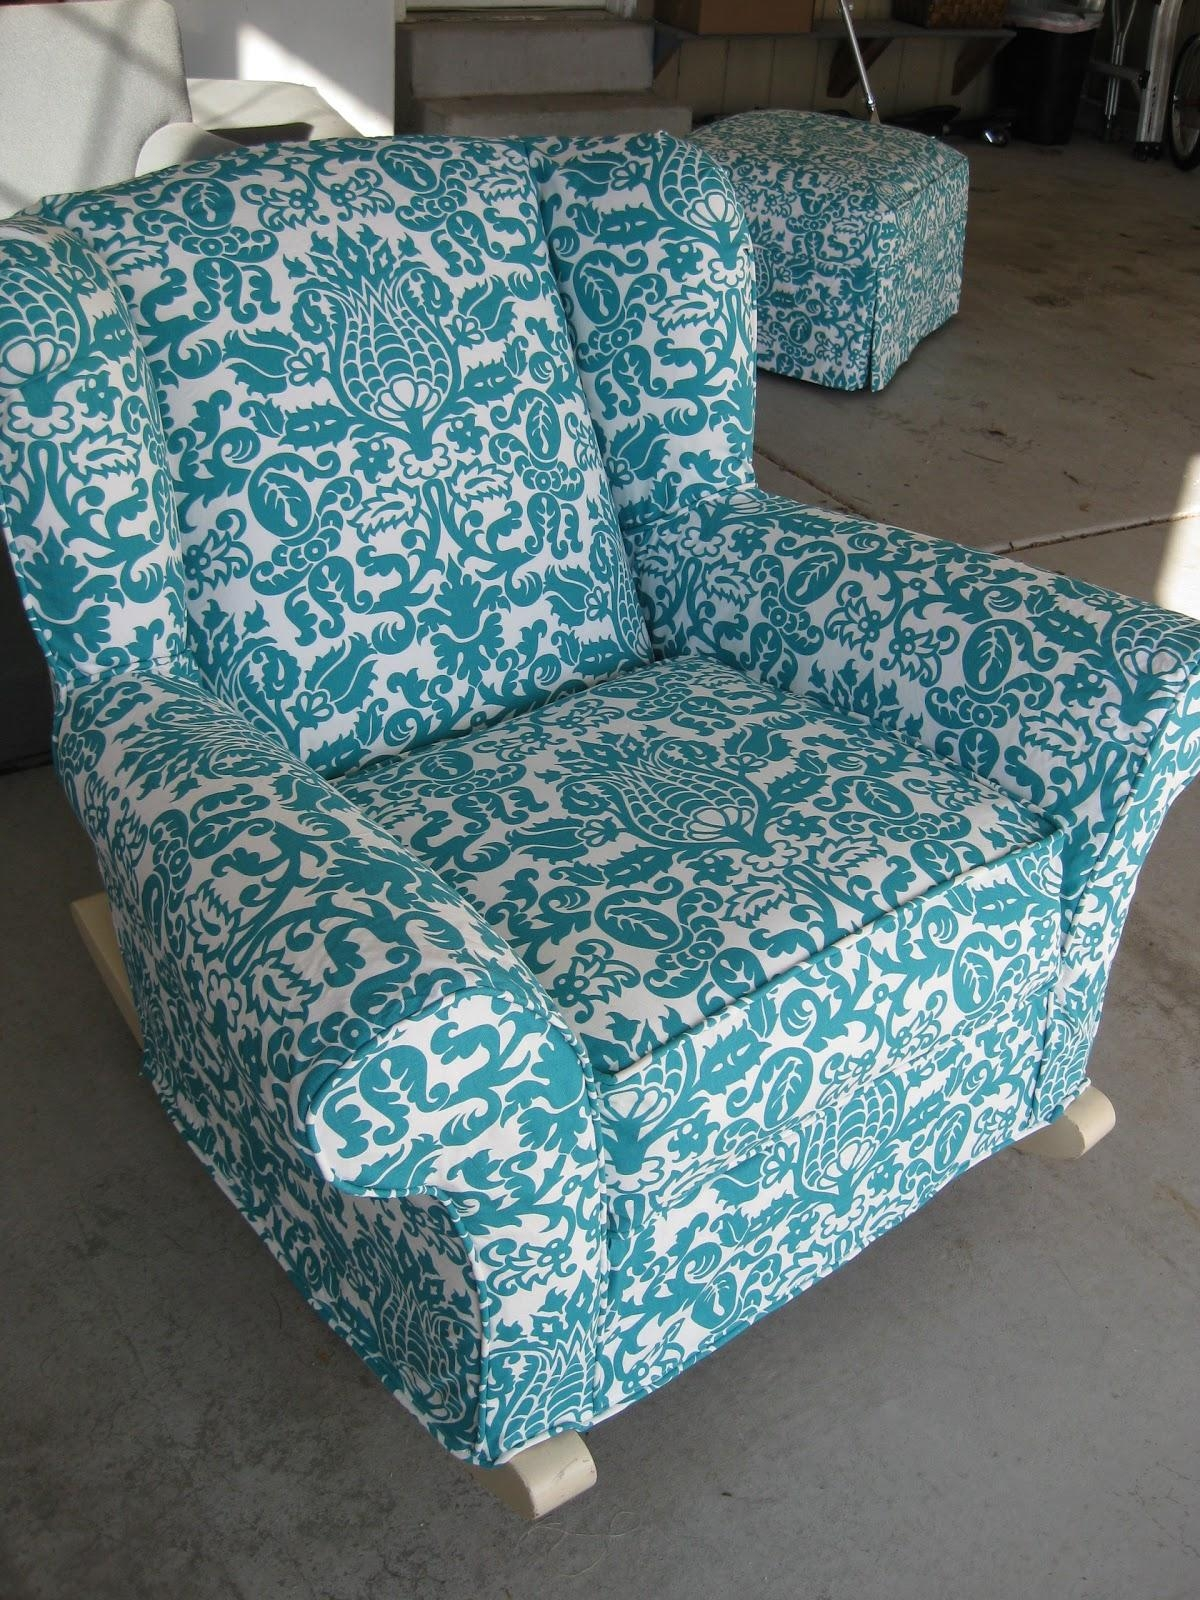 Ideas: Sofa Slip Cover | Pottery Barn Replacement Slipcovers Pertaining To Pottery Barn Chair Slipcovers (Image 11 of 20)